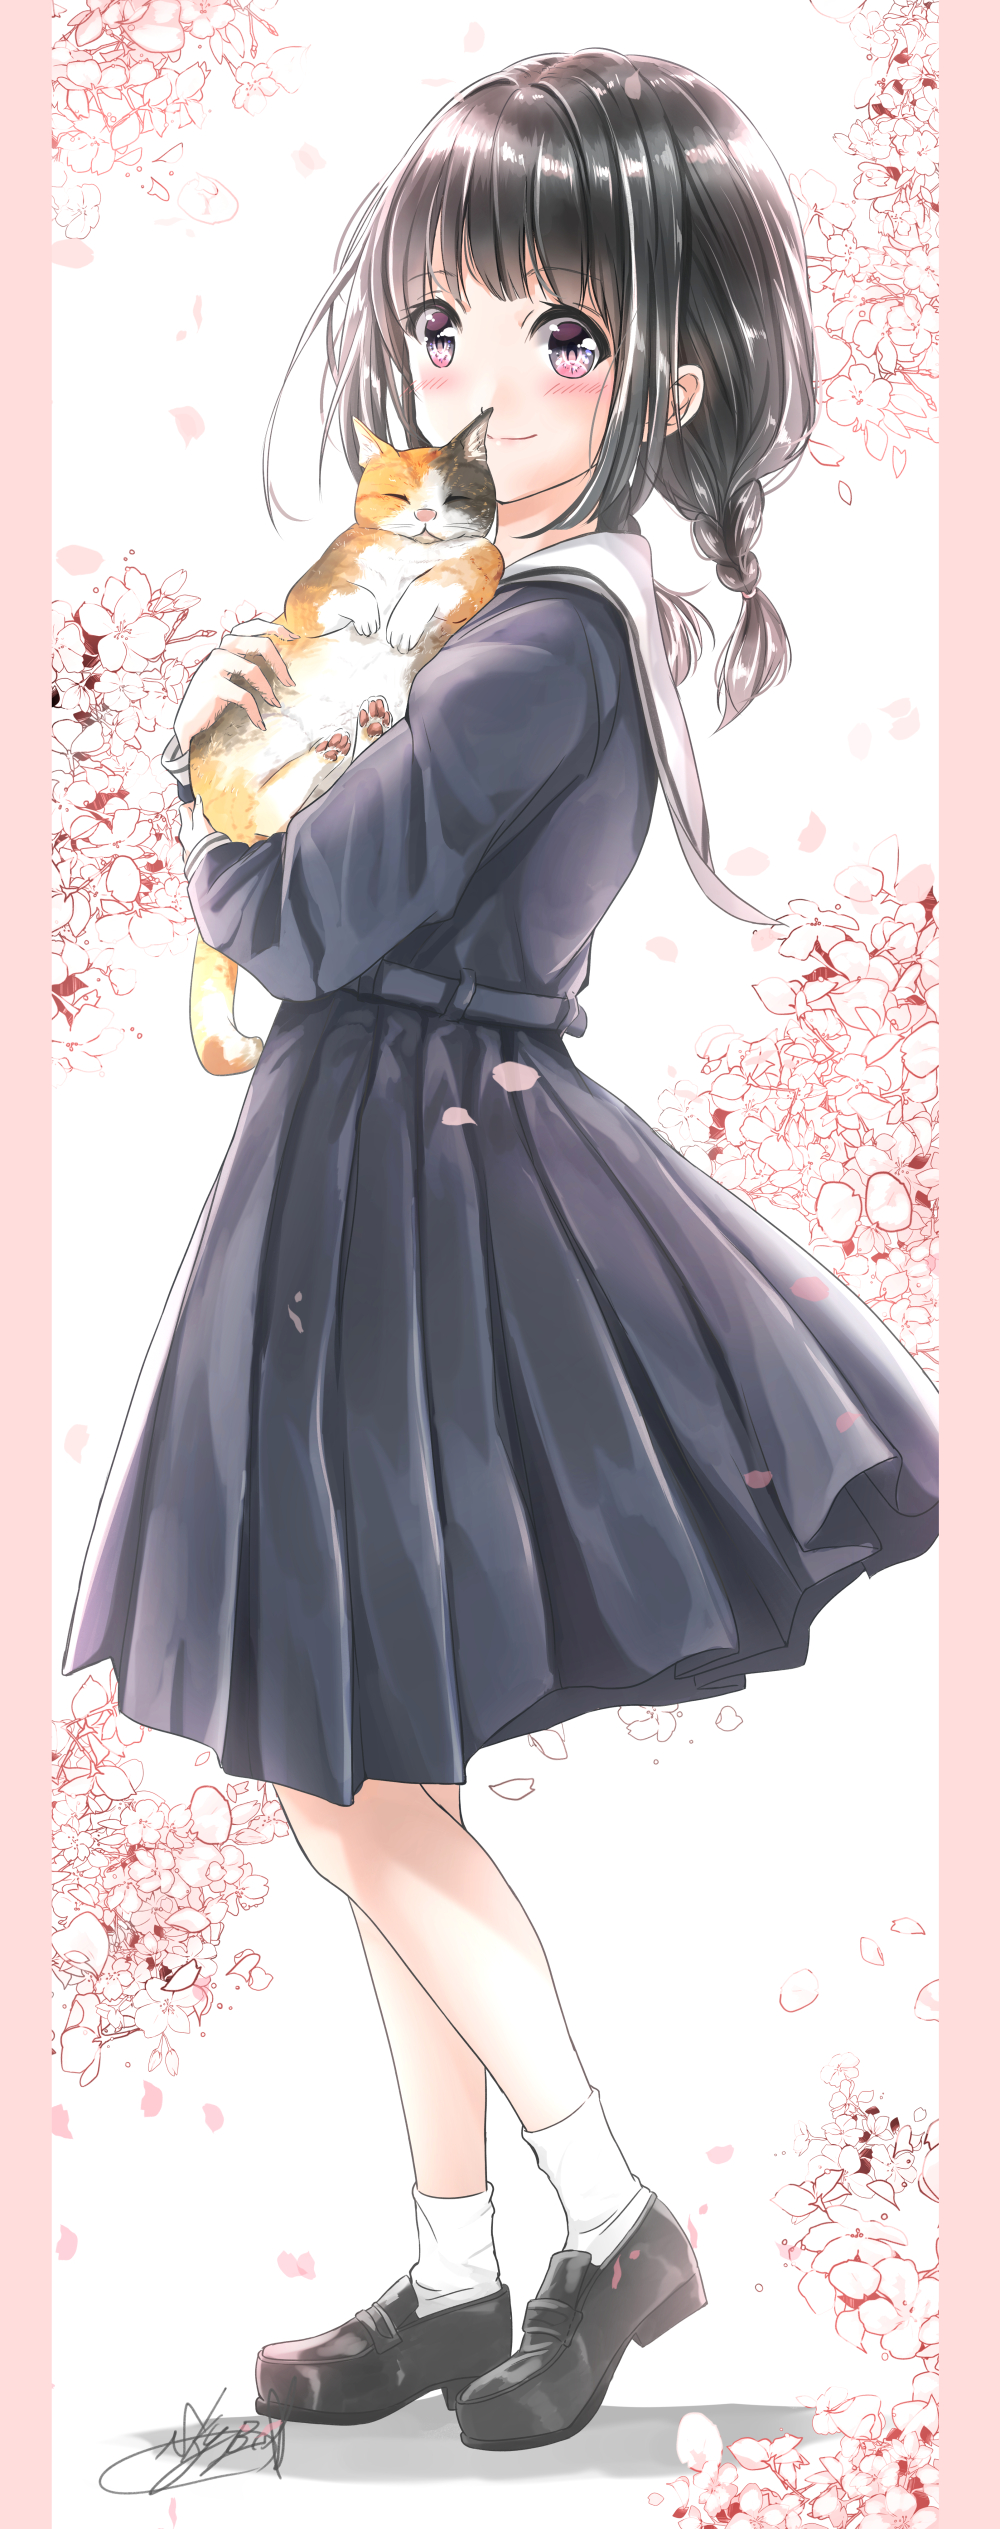 1girl absurdres bangs belt black_footwear black_hair black_serafuku blush border cat cherry_blossoms commentary_request eyebrows_visible_through_hair floral_background from_side full_body highres holding holding_cat leg_lift loafers looking_at_viewer low_twintails original pink_border pink_eyes pleated_skirt sailor_collar school_uniform serafuku shoes short_hair signature skirt smile socks solo soragane_(banisinngurei) spring_(season) twintails uniform white_background white_legwear white_sailor_collar